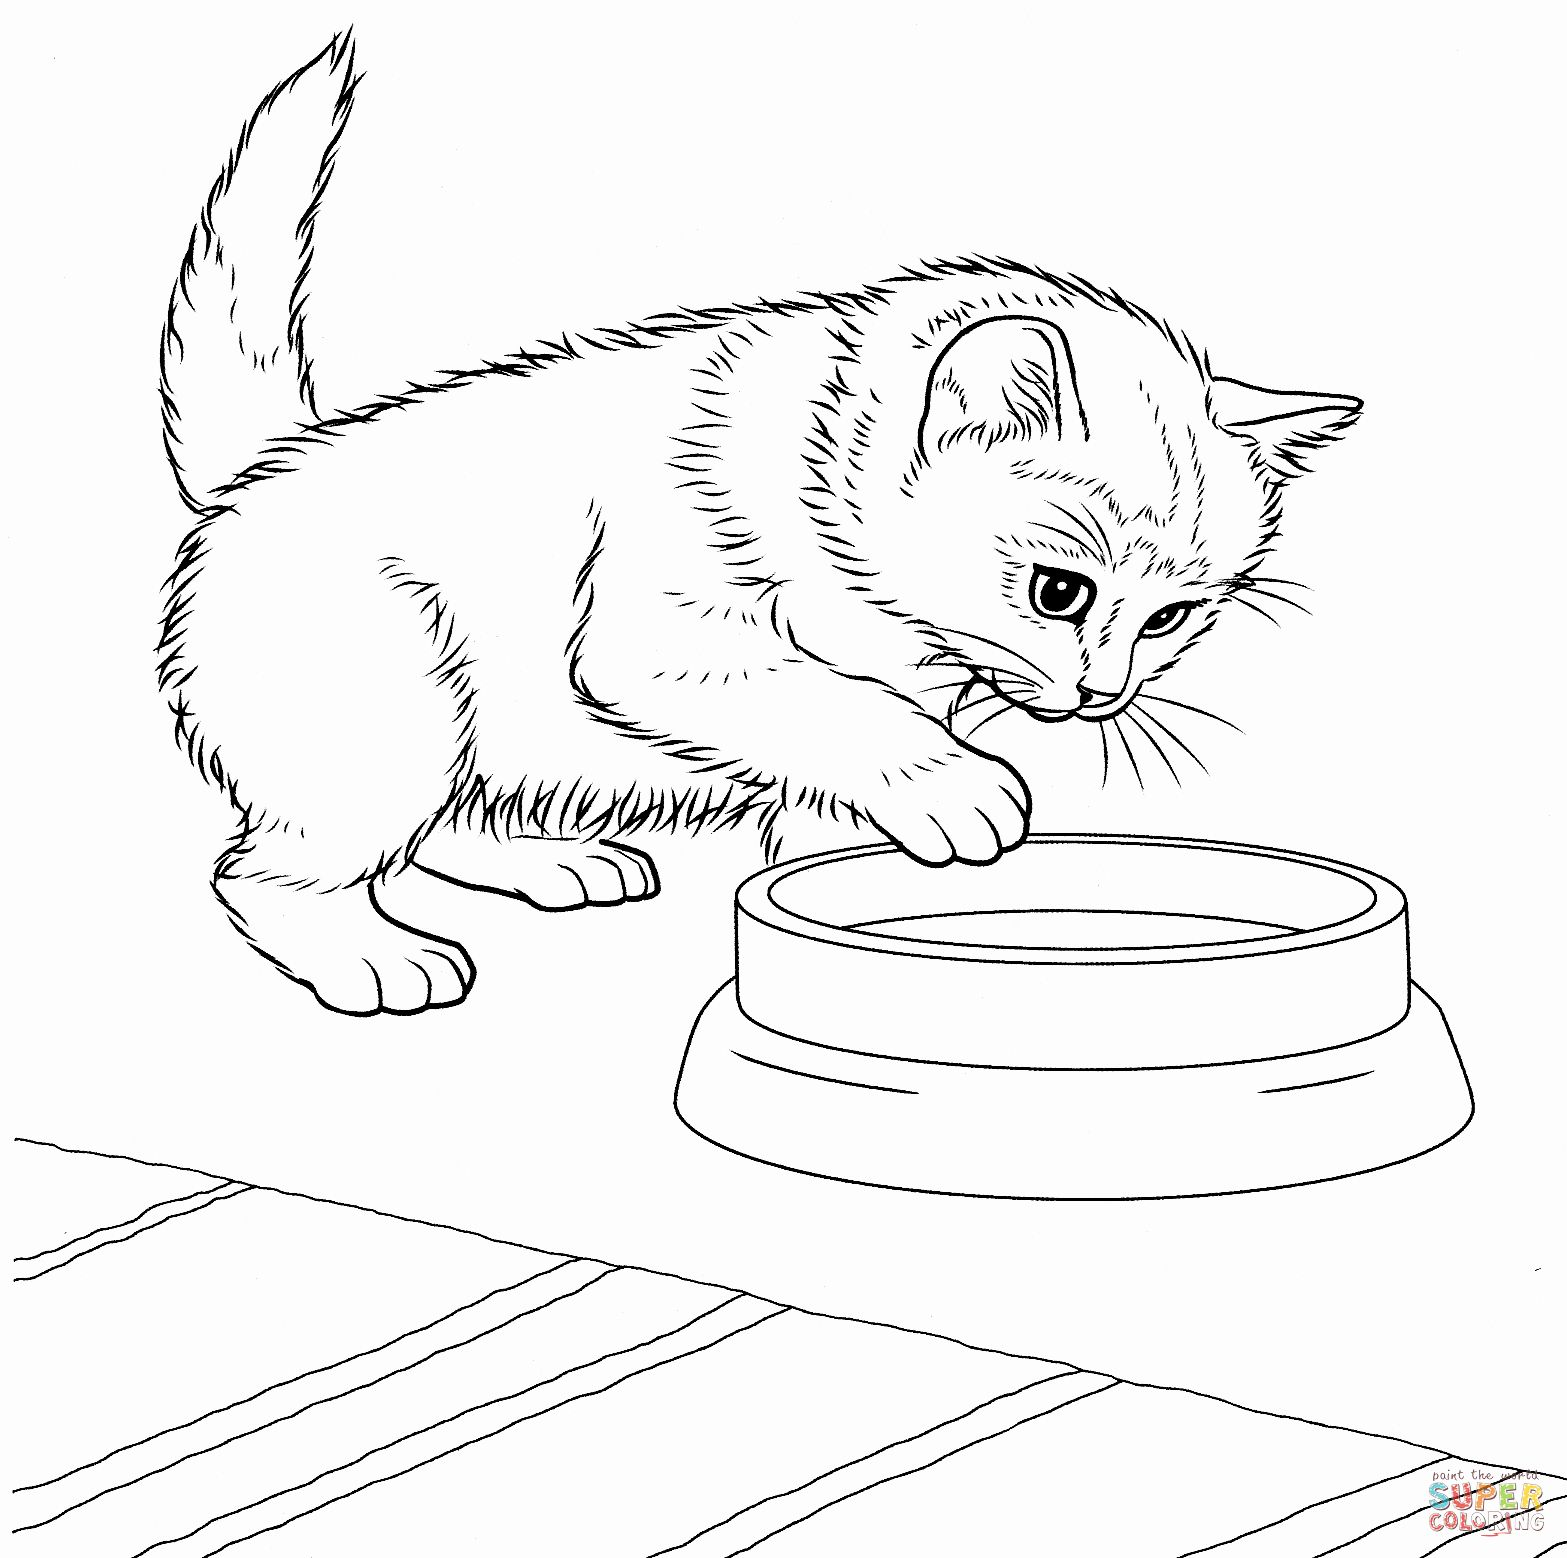 Printable Kitten Coloring Pages Inspirational Javanese Kitten Coloring Page In 2020 Kittens Coloring Kitten Coloring Book Cat Coloring Book